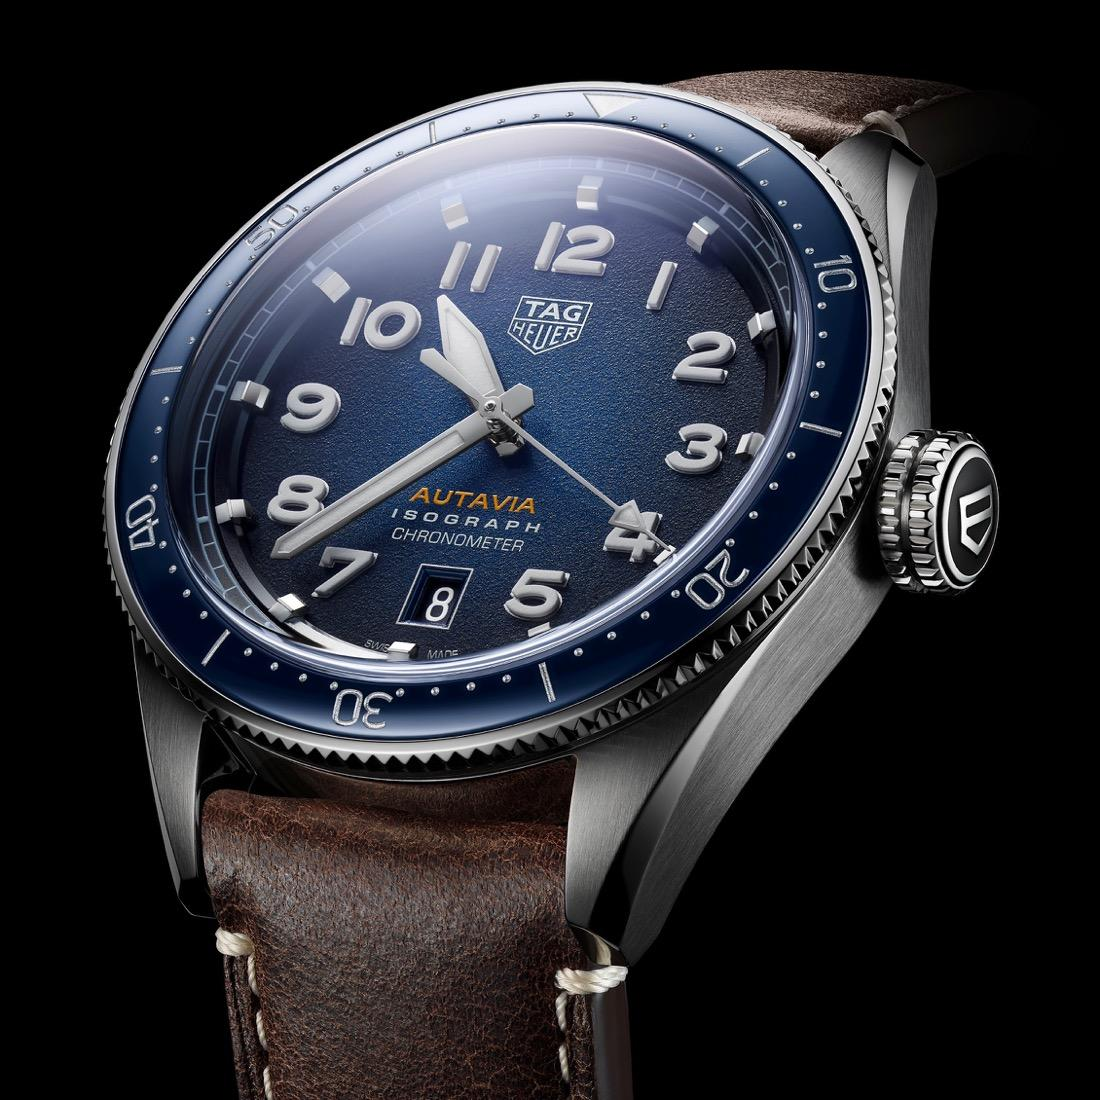 Introducing the TAG Heuer Autavia Isograph   Wrist Watch Review